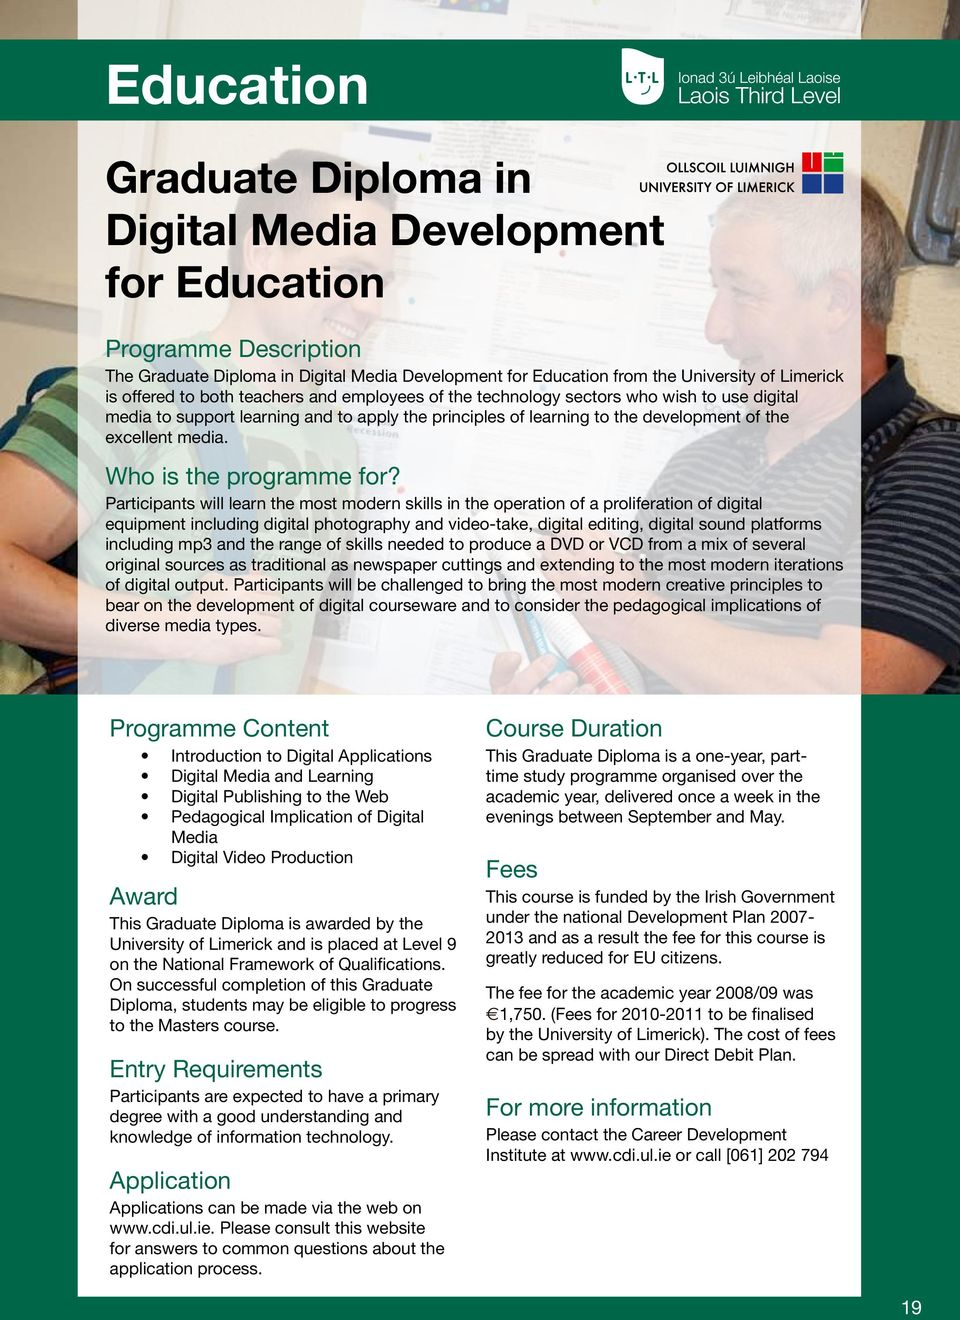 Participants will learn the most modern skills in the operation of a proliferation of digital equipment including digital photography and video-take, digital editing, digital sound platforms